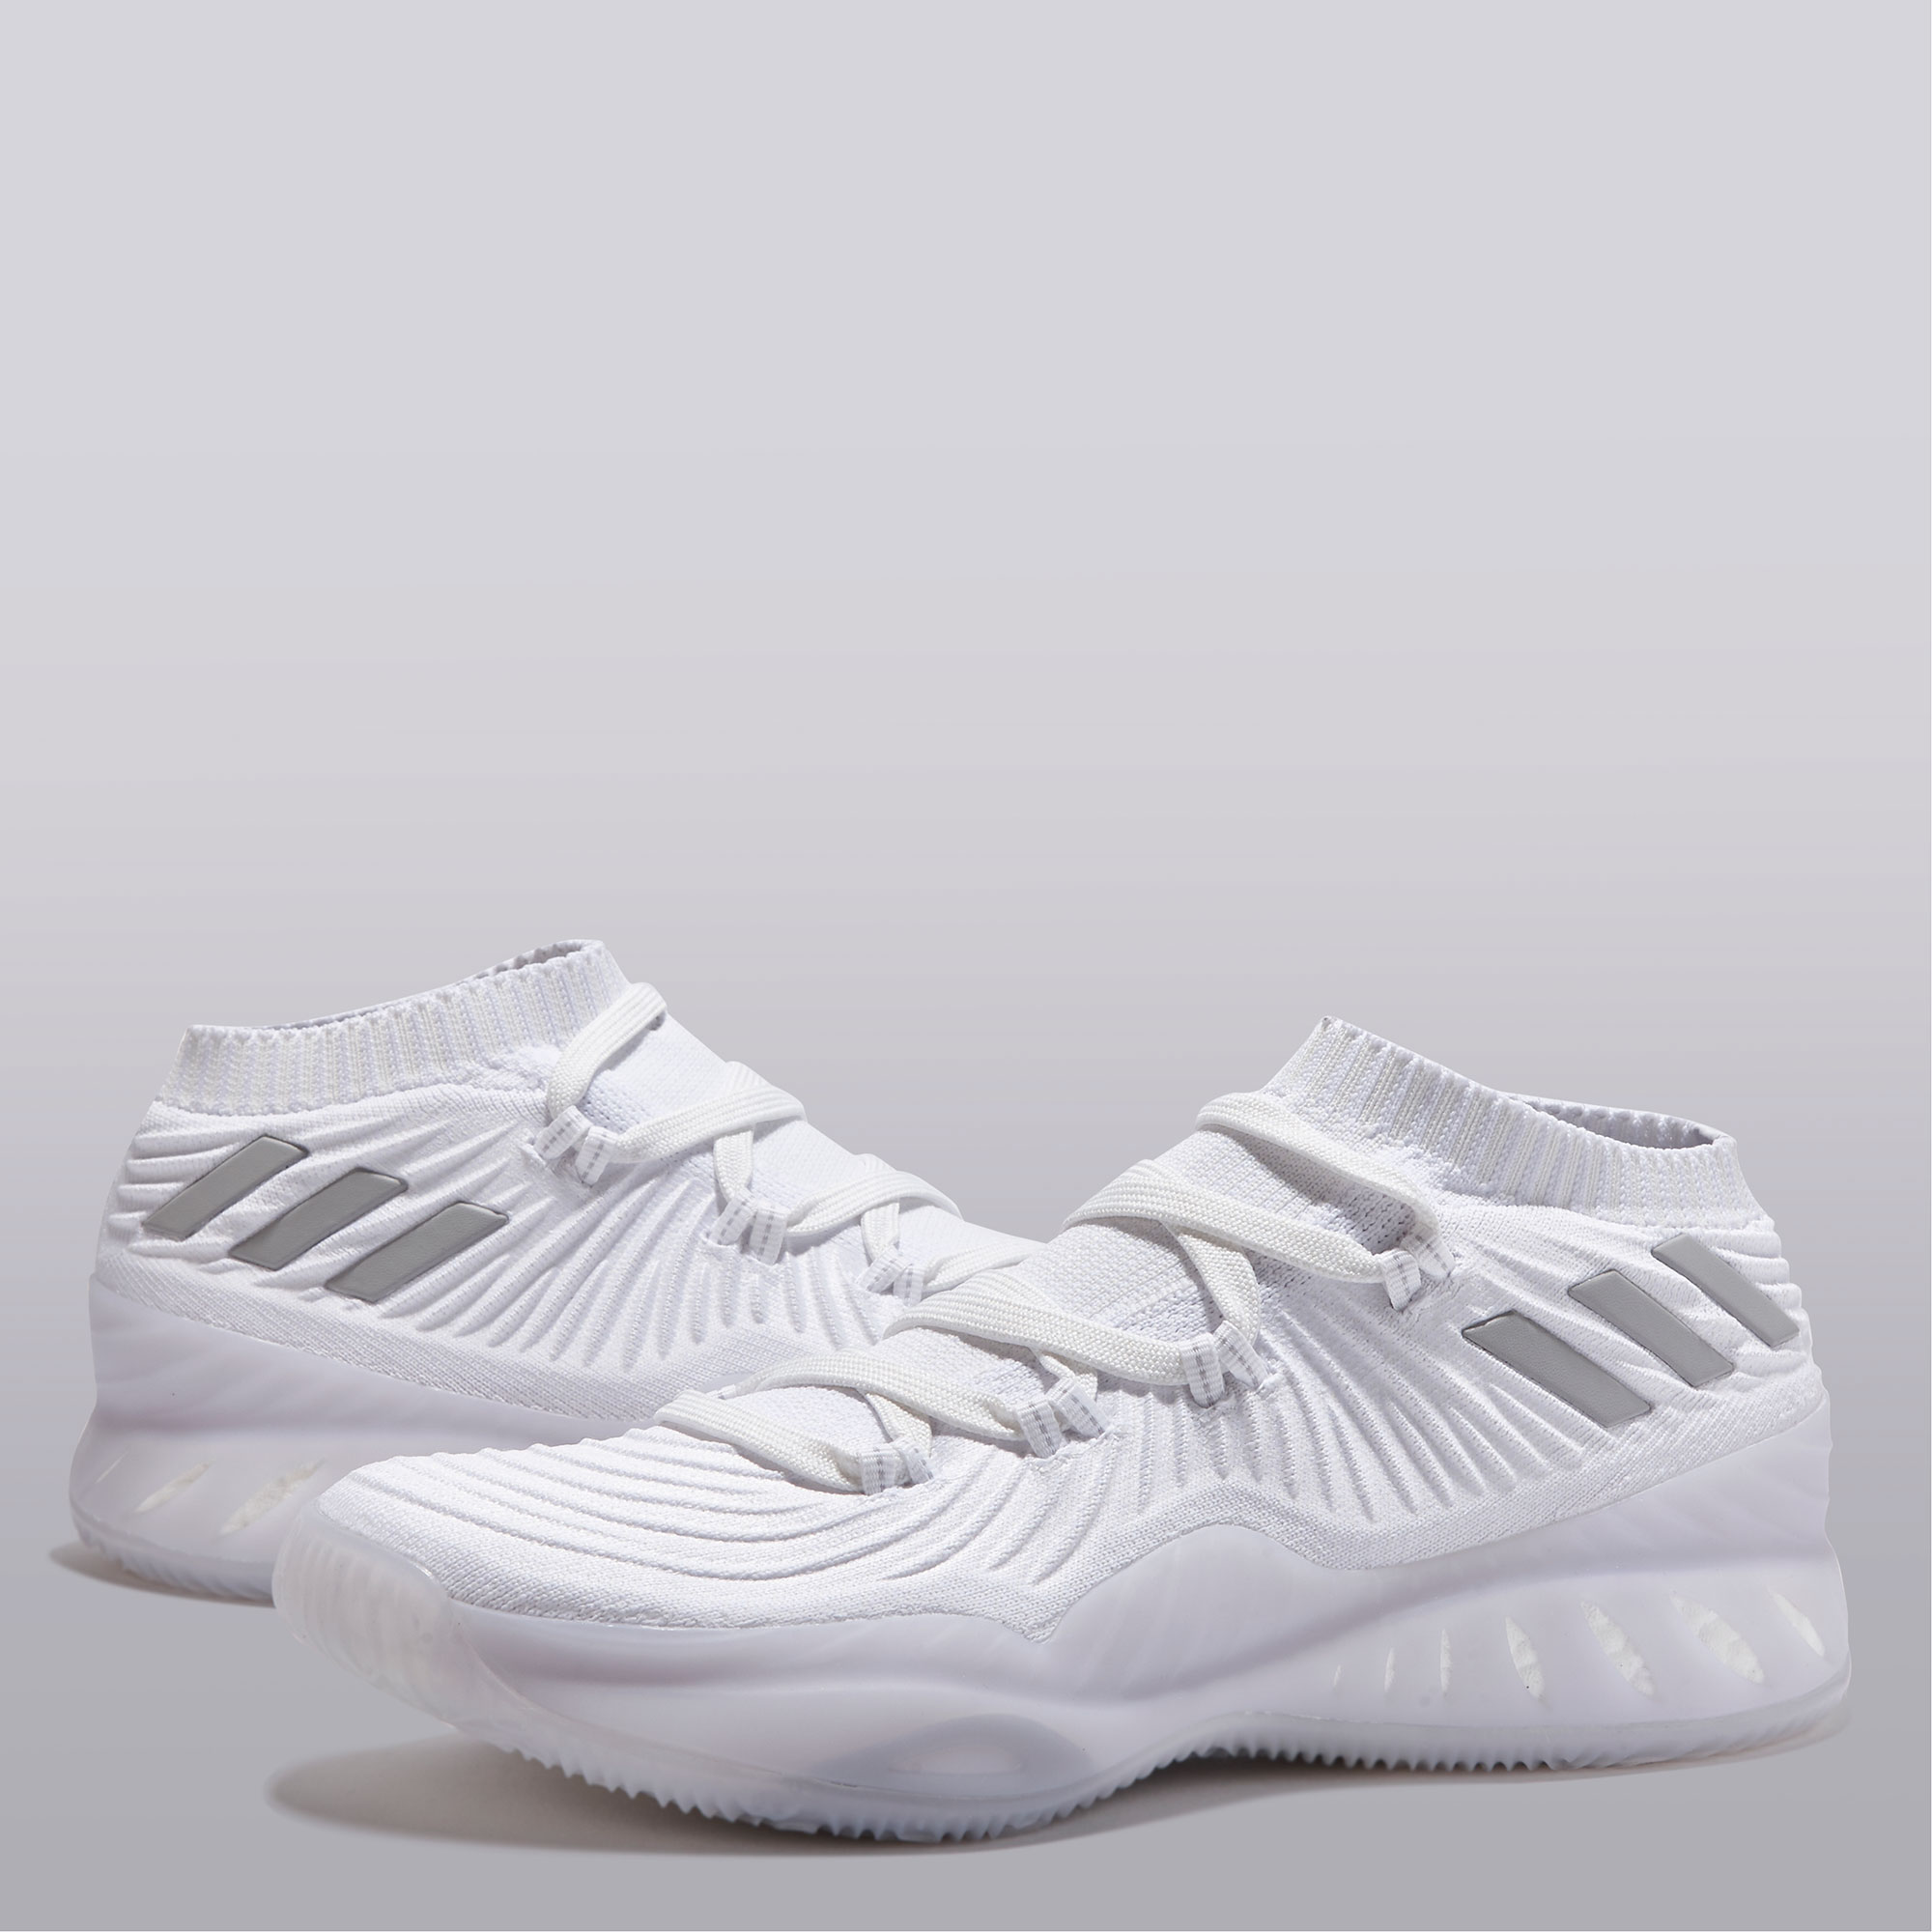 "Image of ""adidas Crazy Explosive Low Primeknit 2017 Basketball Shoe - Triple White"""